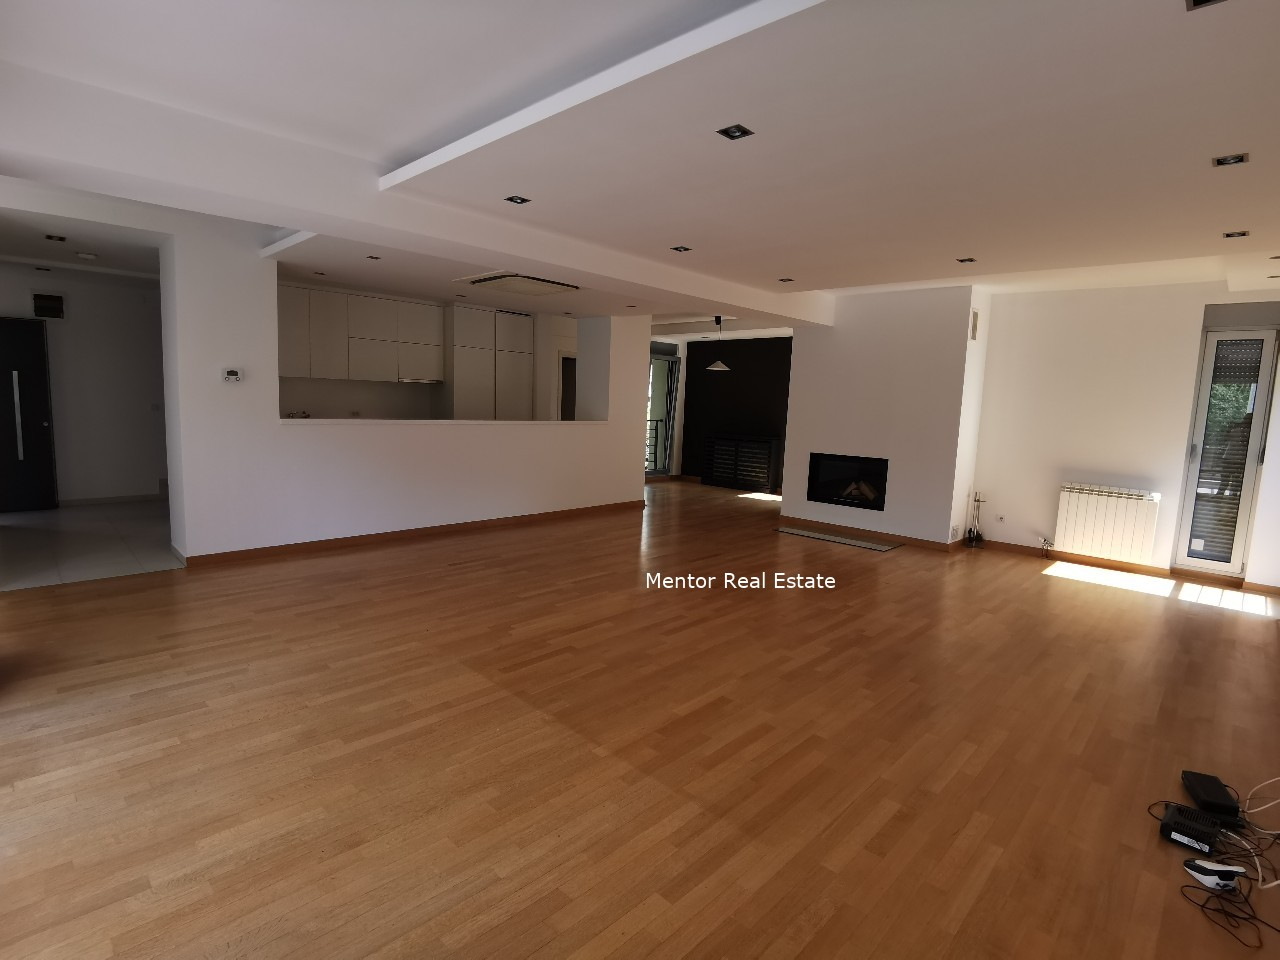 Banovo Brdo 450sqm single luxury house for rent